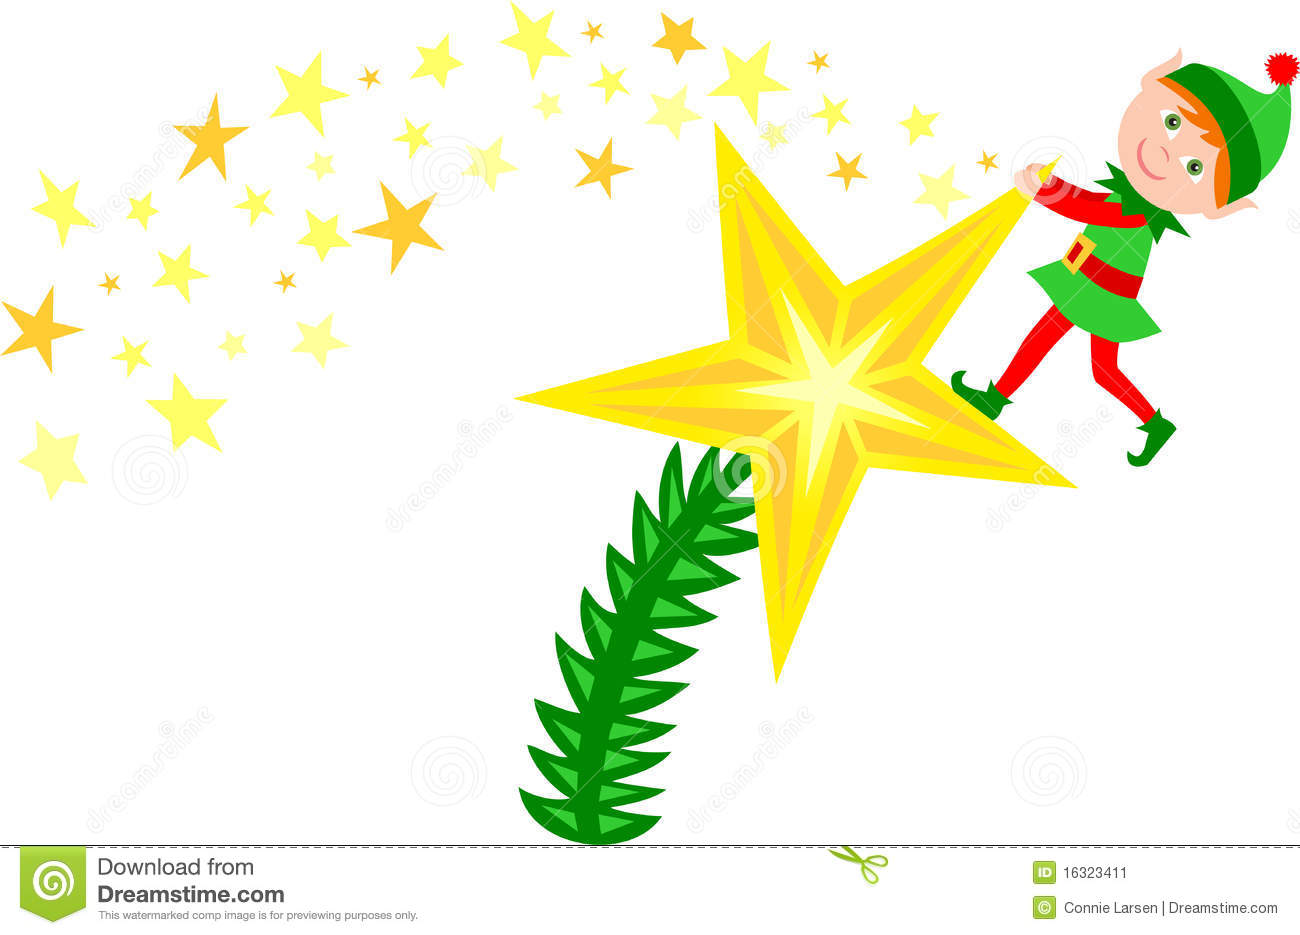 Christmas Tree Top Star   Clipart Panda - Free Clipart Images